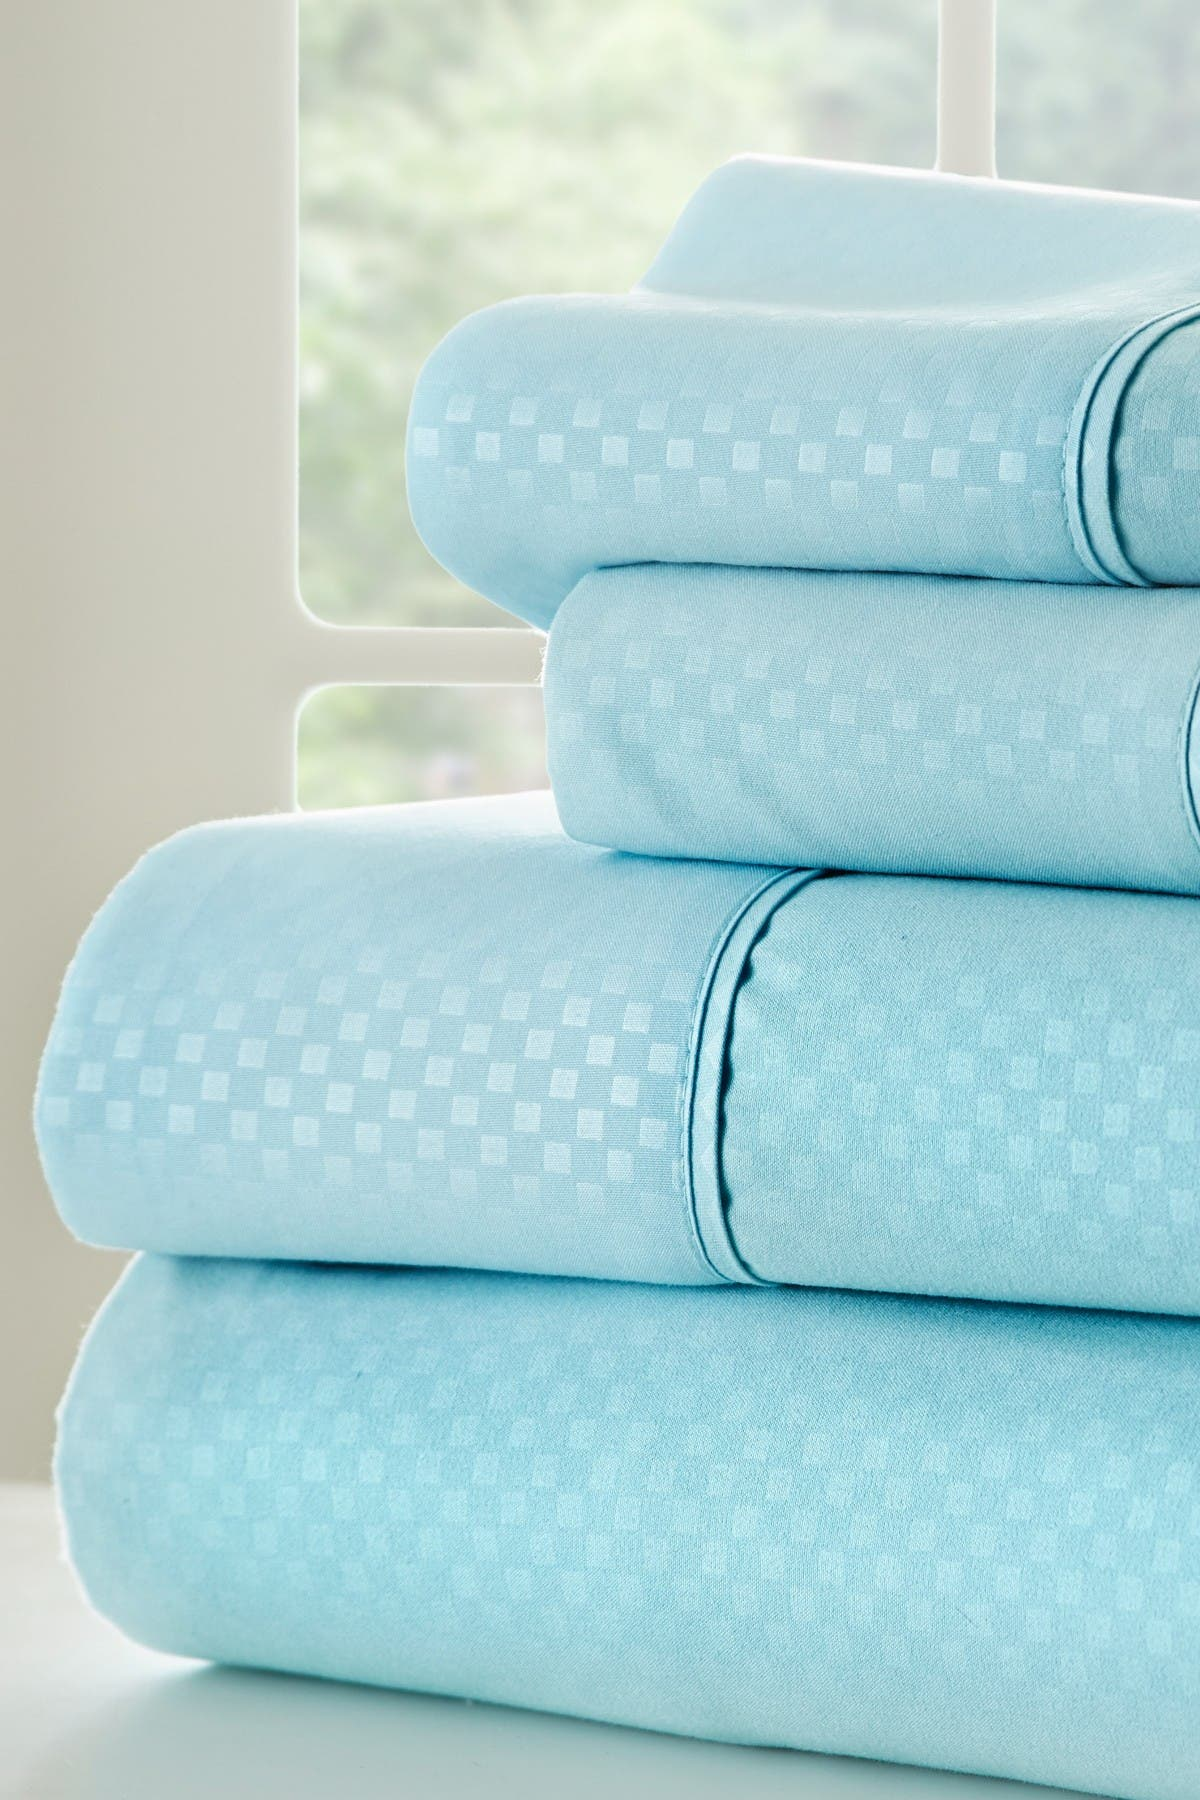 Image of IENJOY HOME Full Hotel Collection Premium Ultra Soft 4-Piece Checkered Bed Sheet Set - Aqua